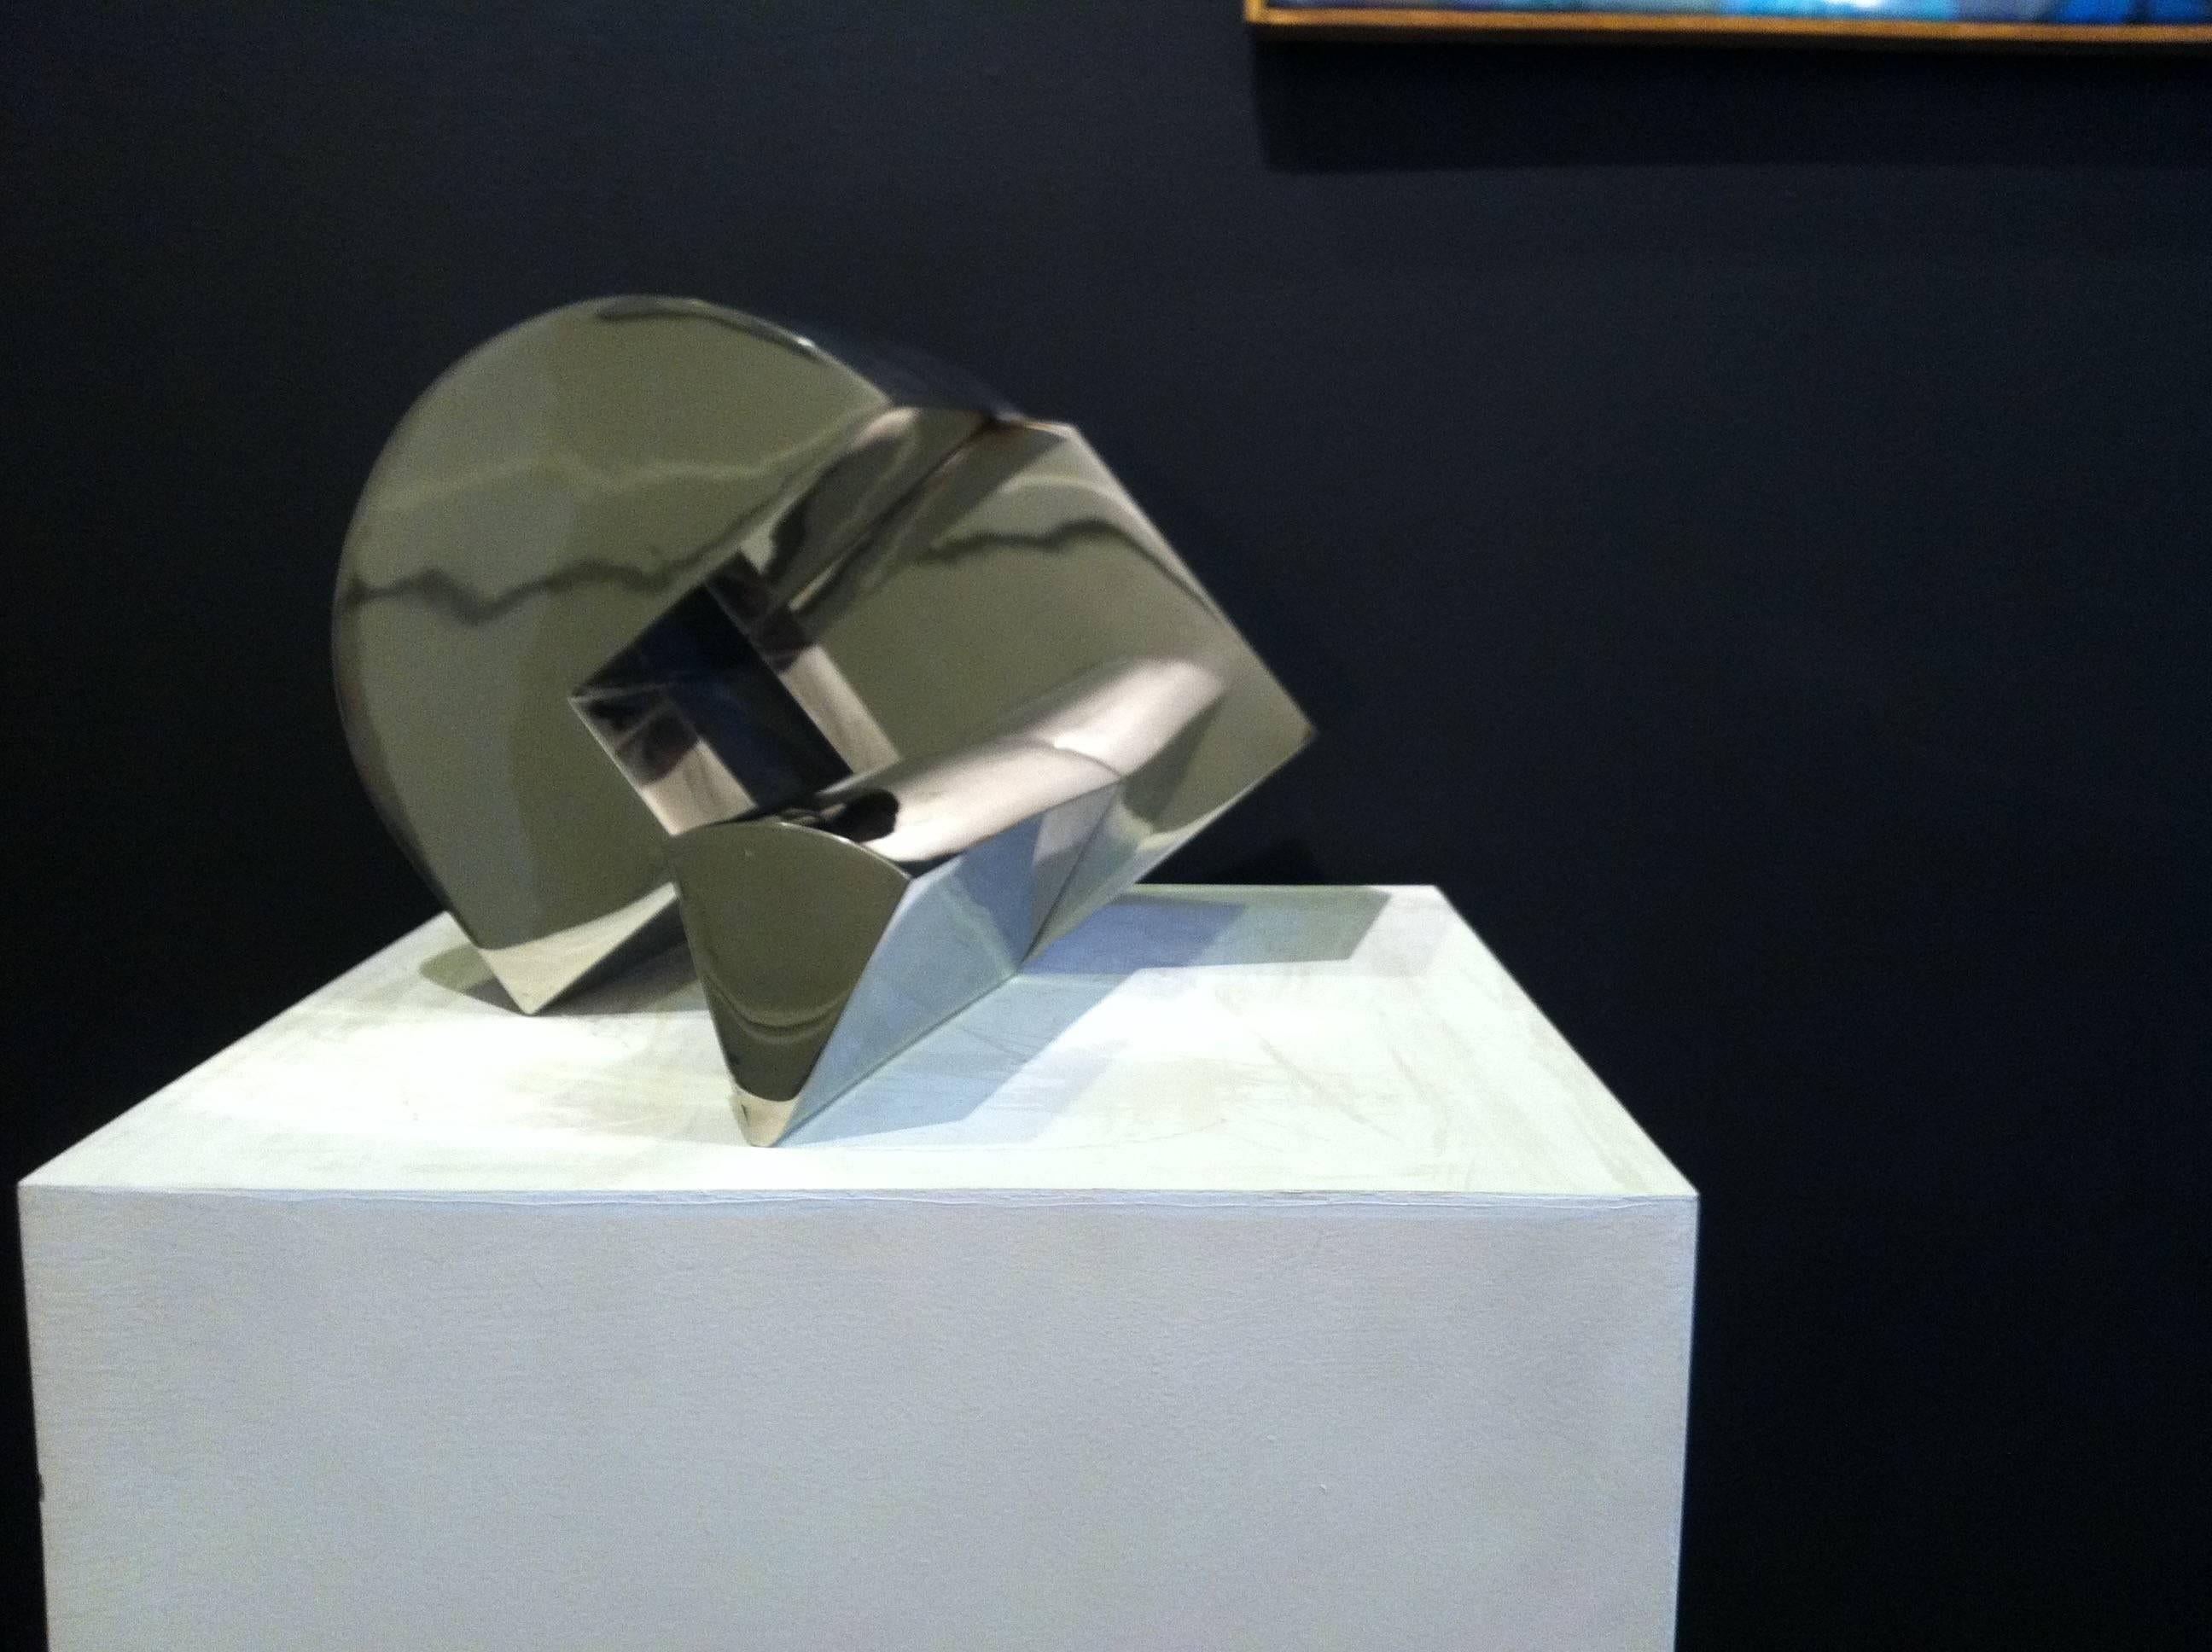 Stainless Steel Sculpture -- The Sun, the Moon and the Wedge